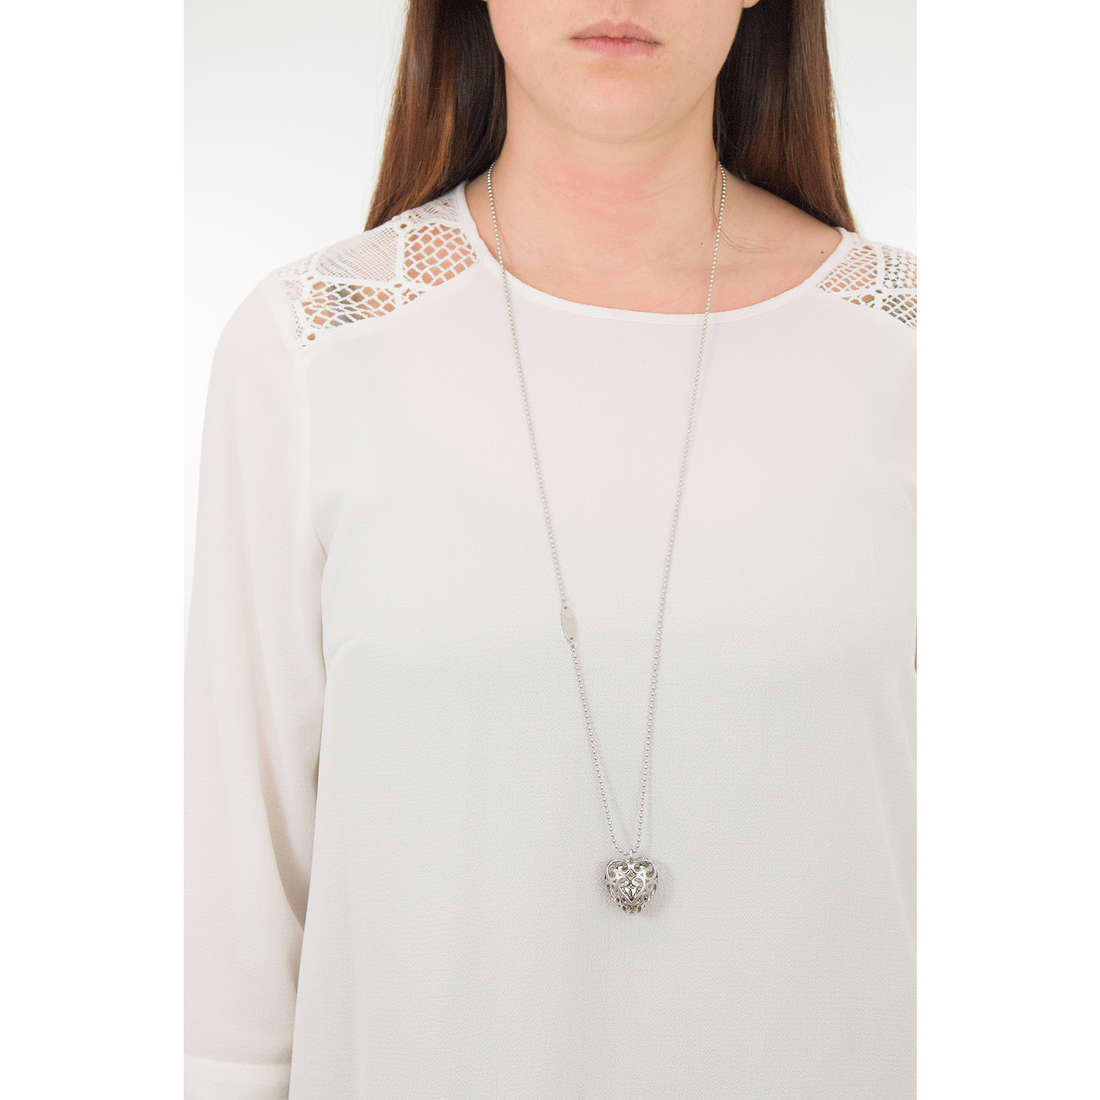 Luca Barra necklaces Babe woman LBCK1051 photo wearing